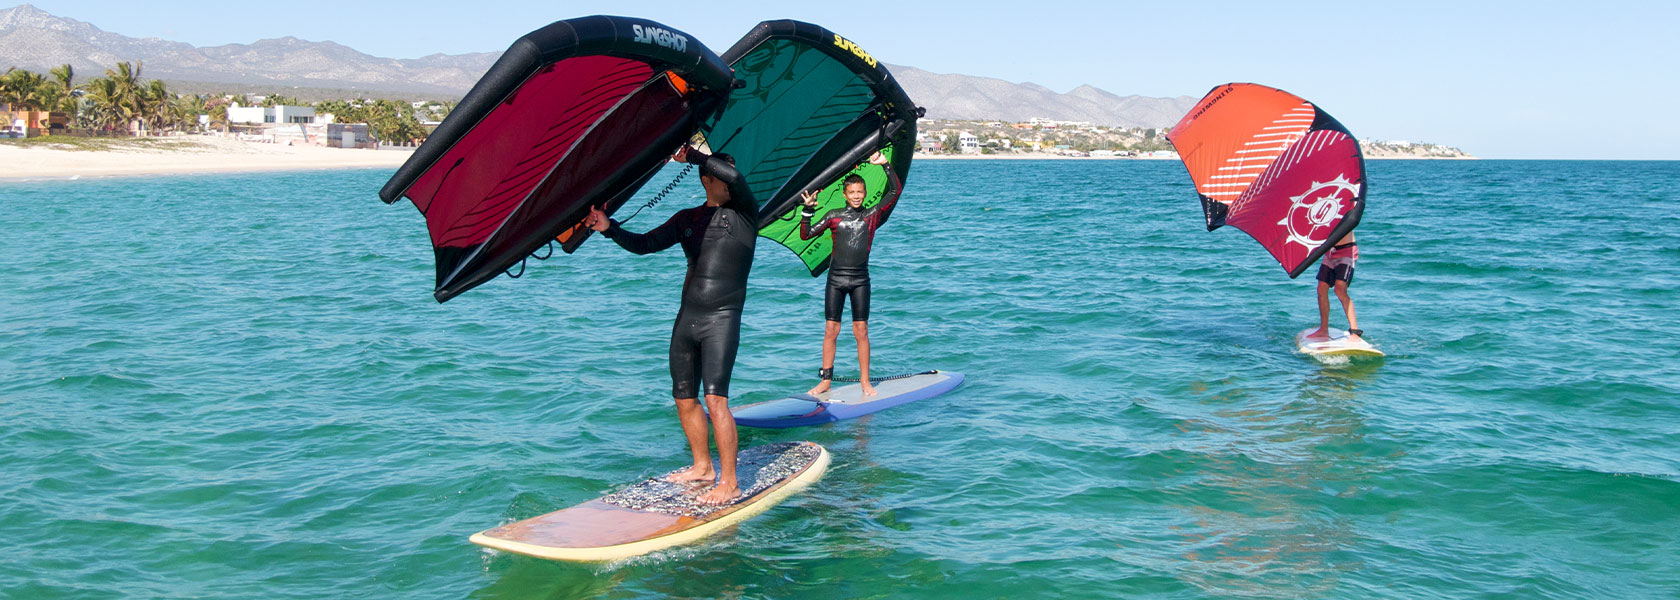 SUP Wing Surf